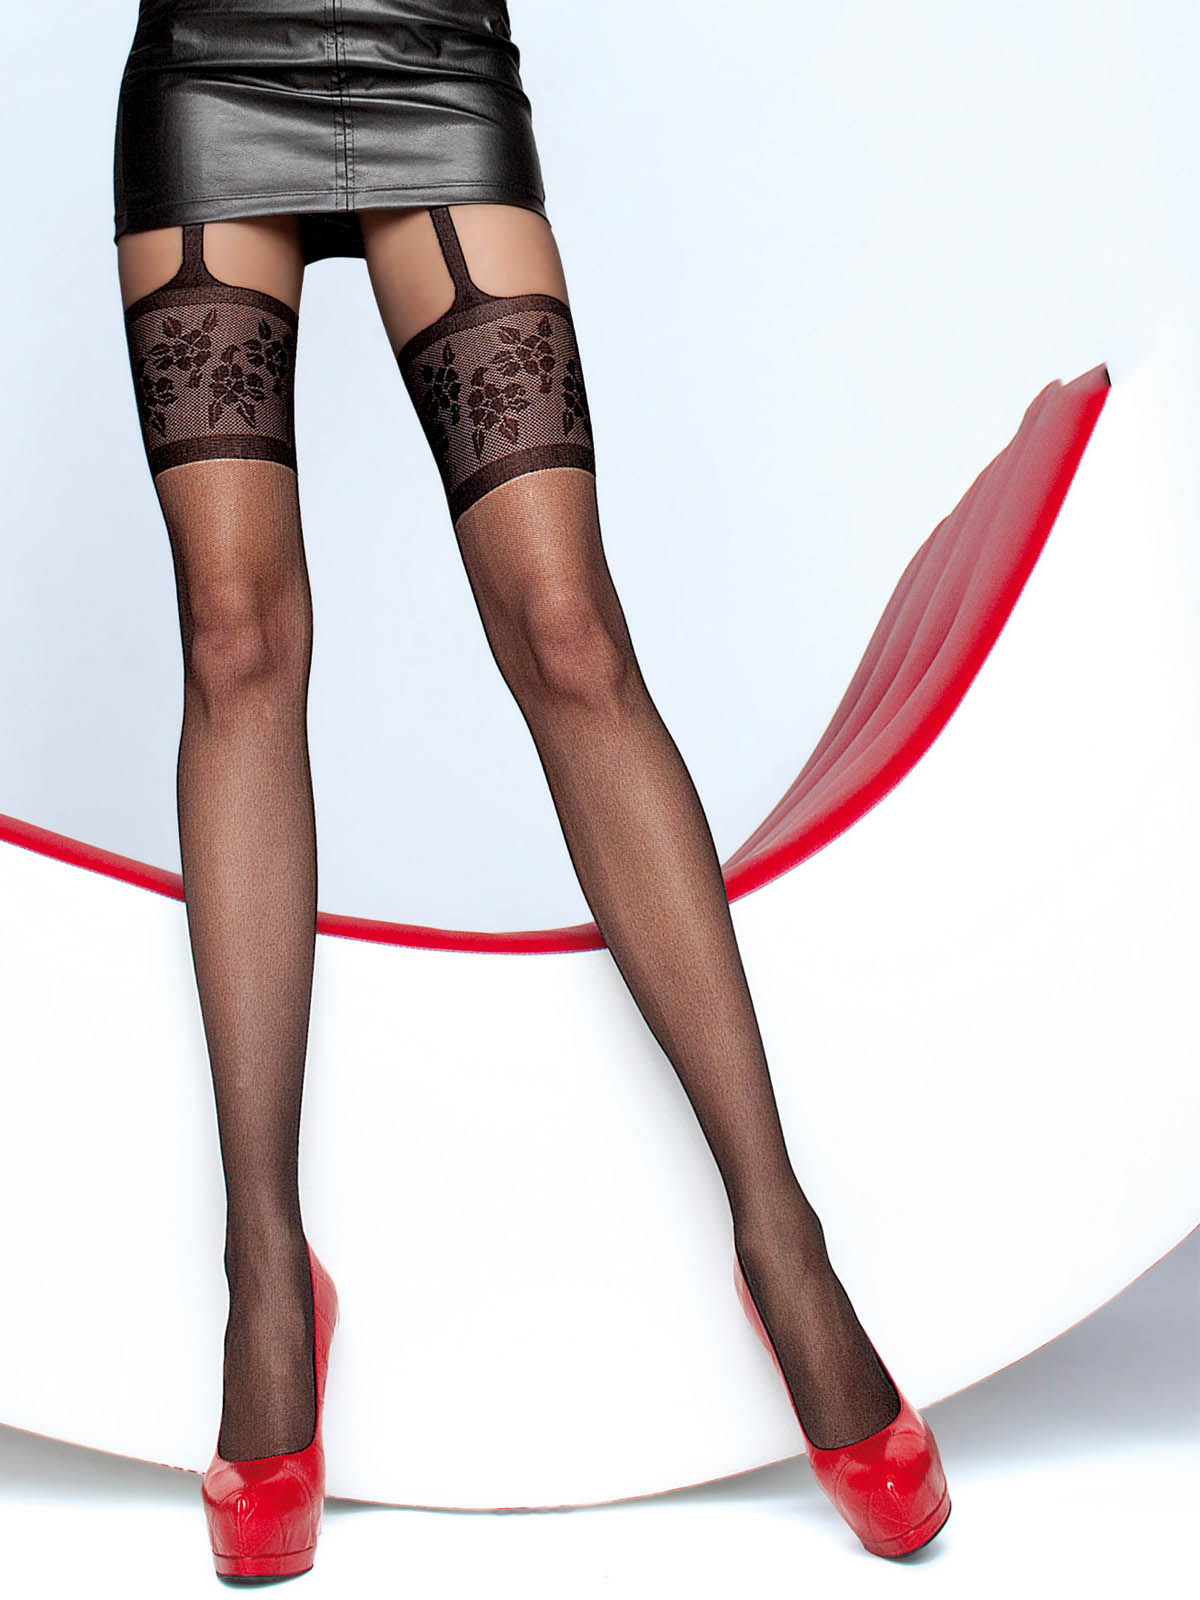 Fiore - Patterned Tights Muriel Black